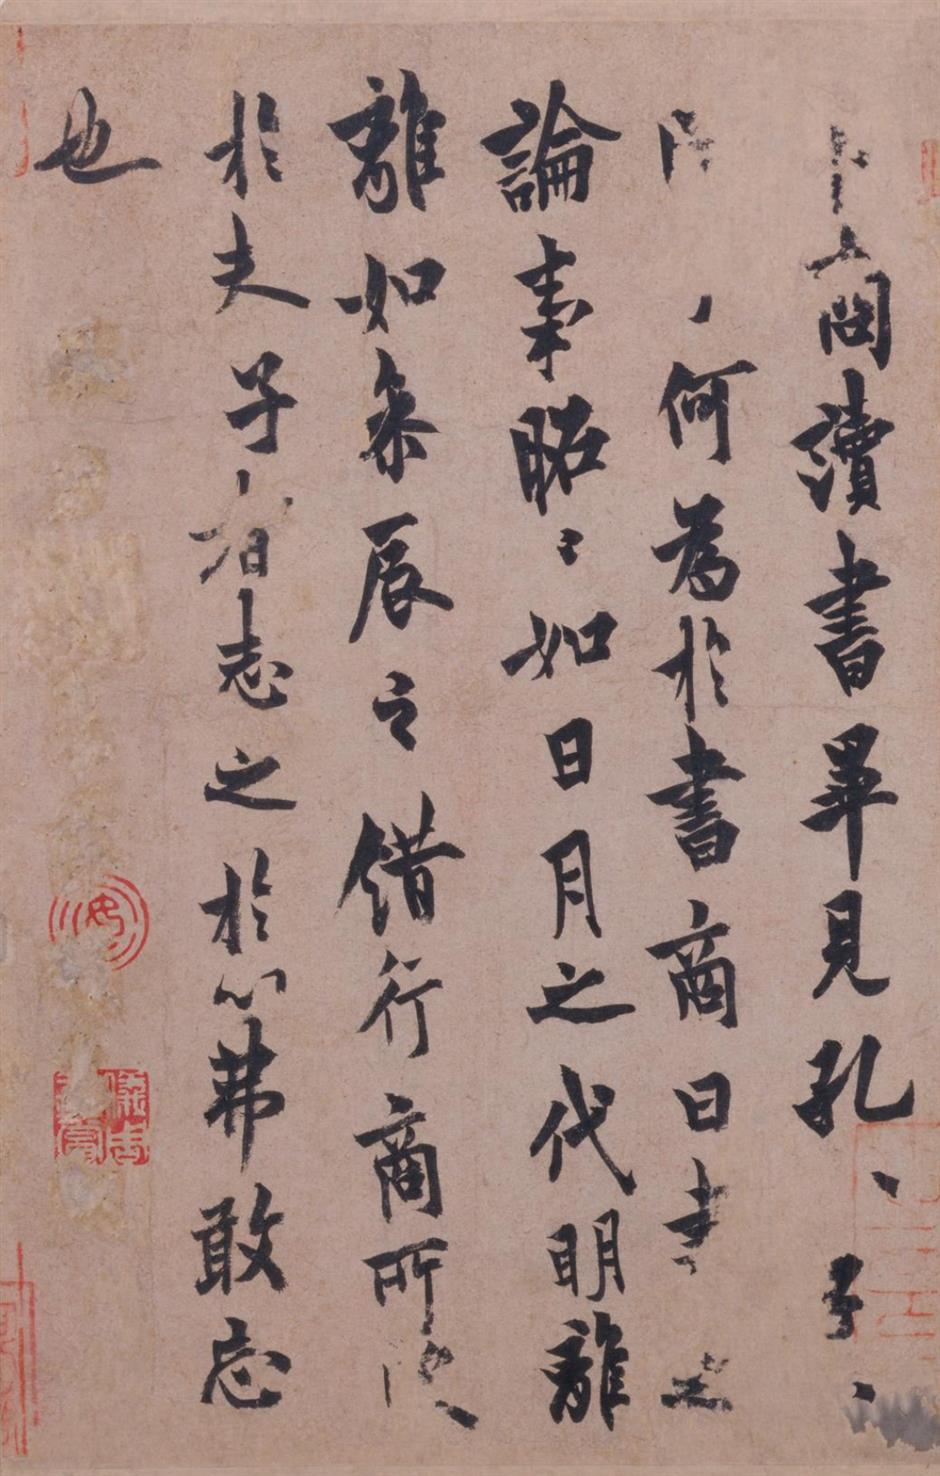 Imperial calligrapher with style